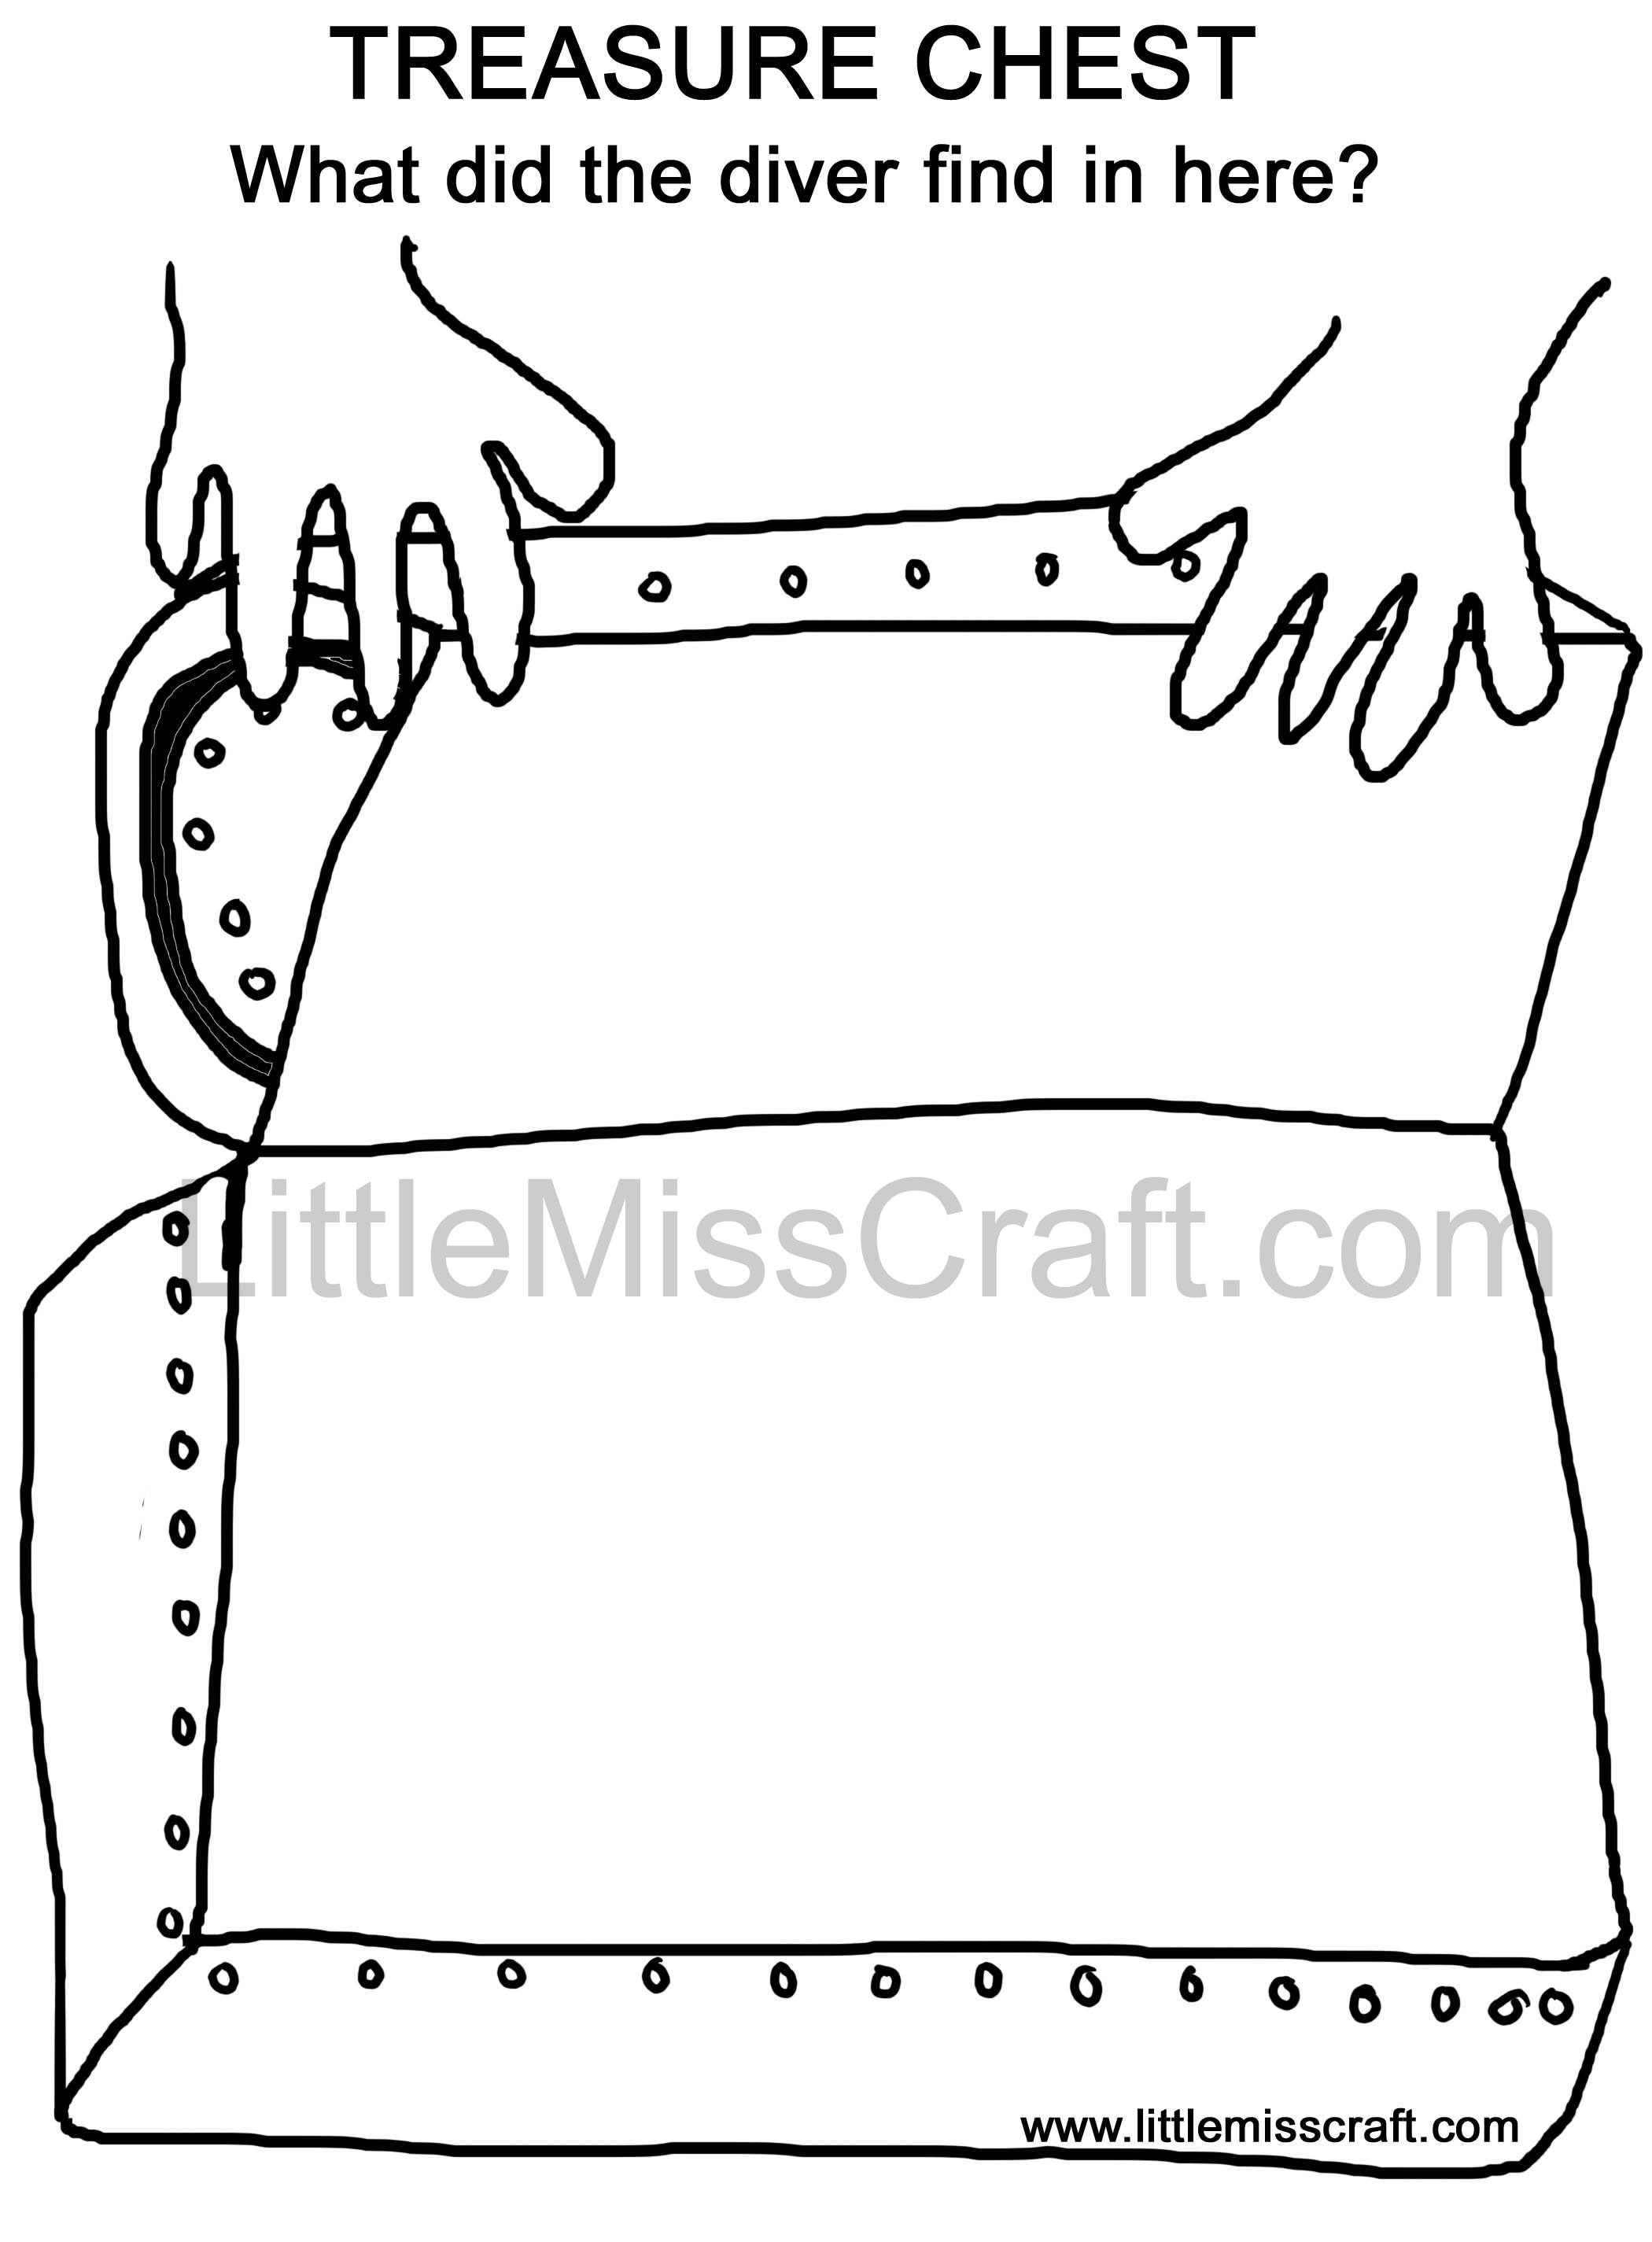 crafts diver treasure chest doodle coloring page